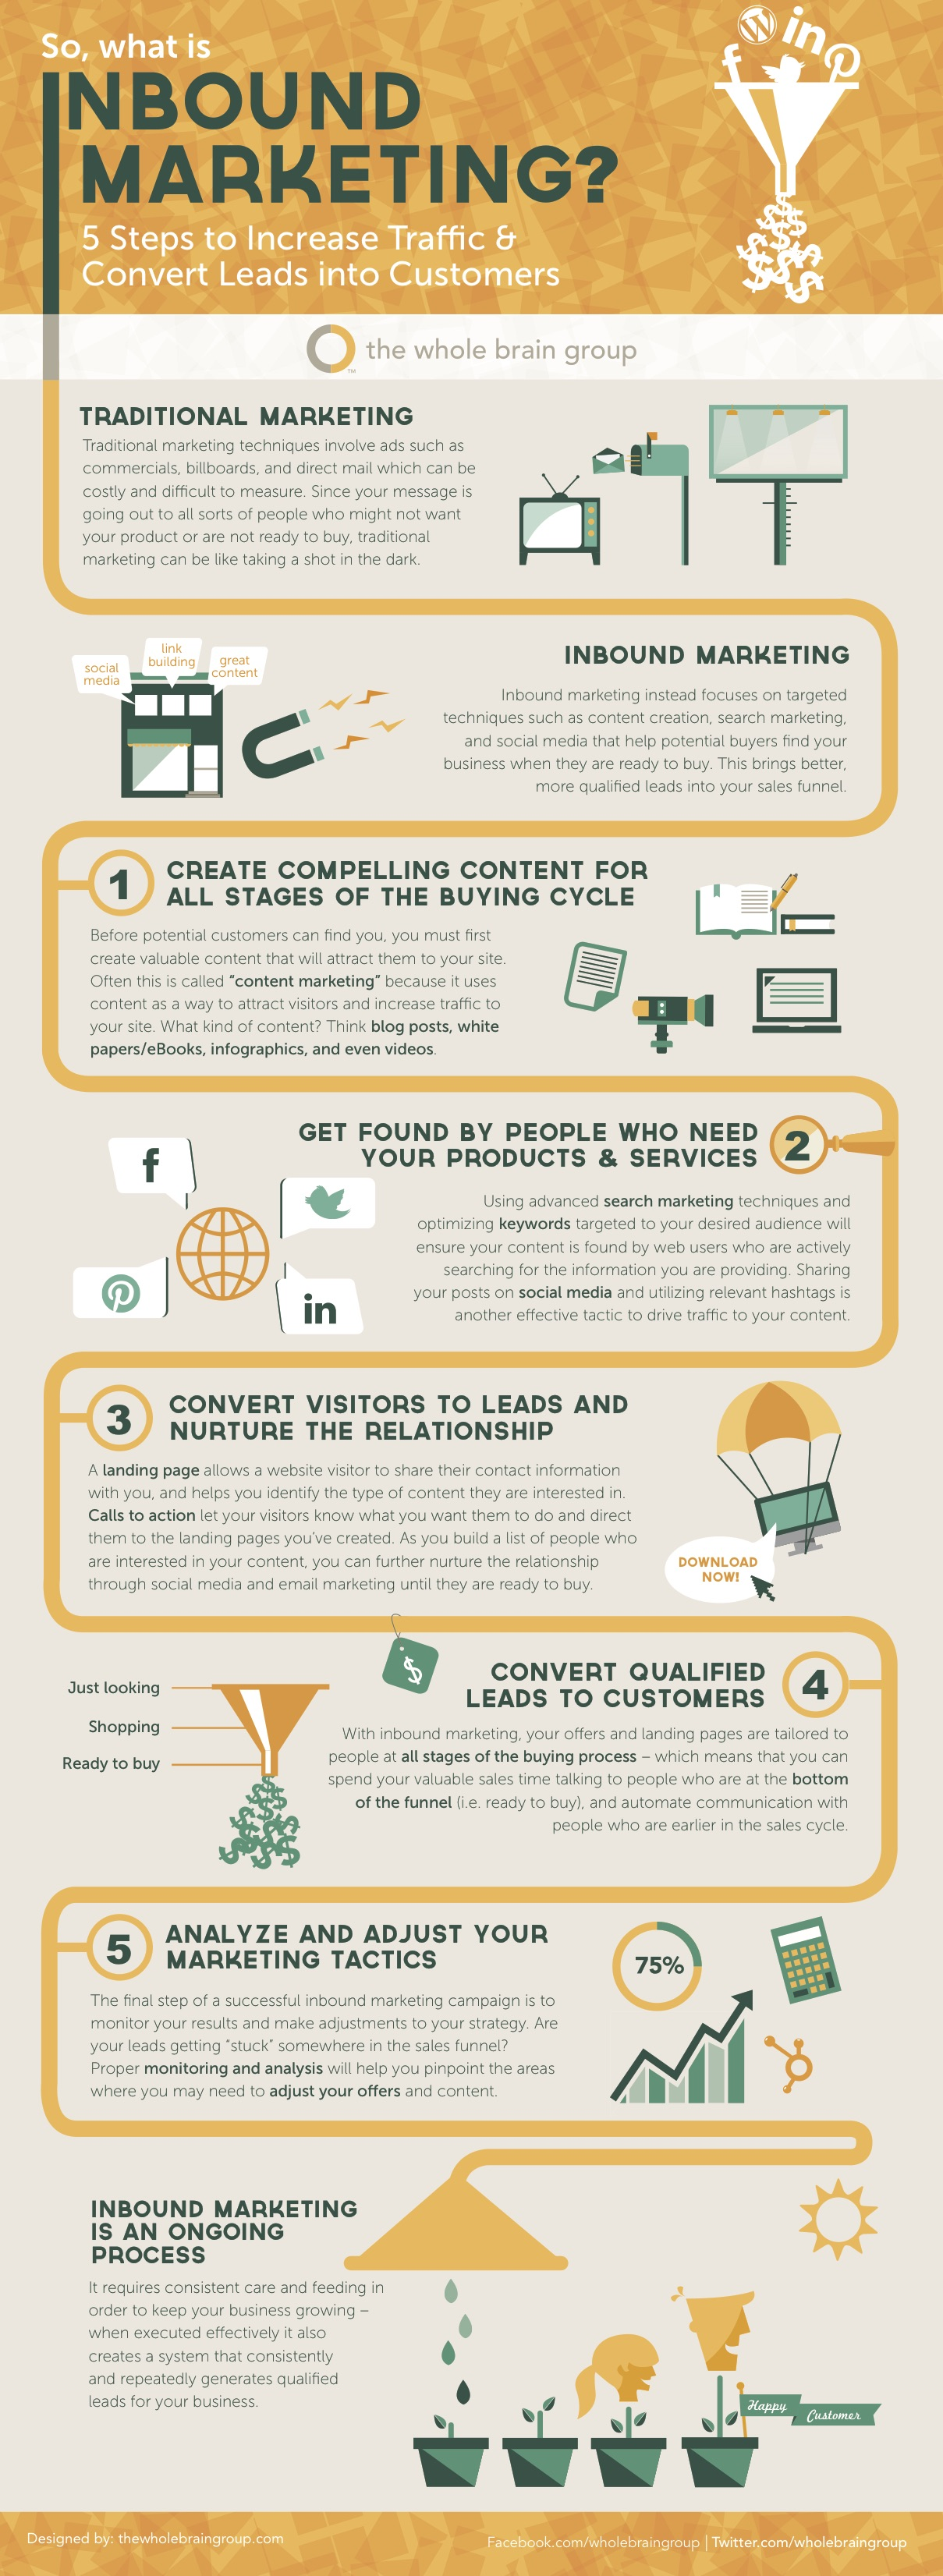 Infographic: What is Inbound Marketing?